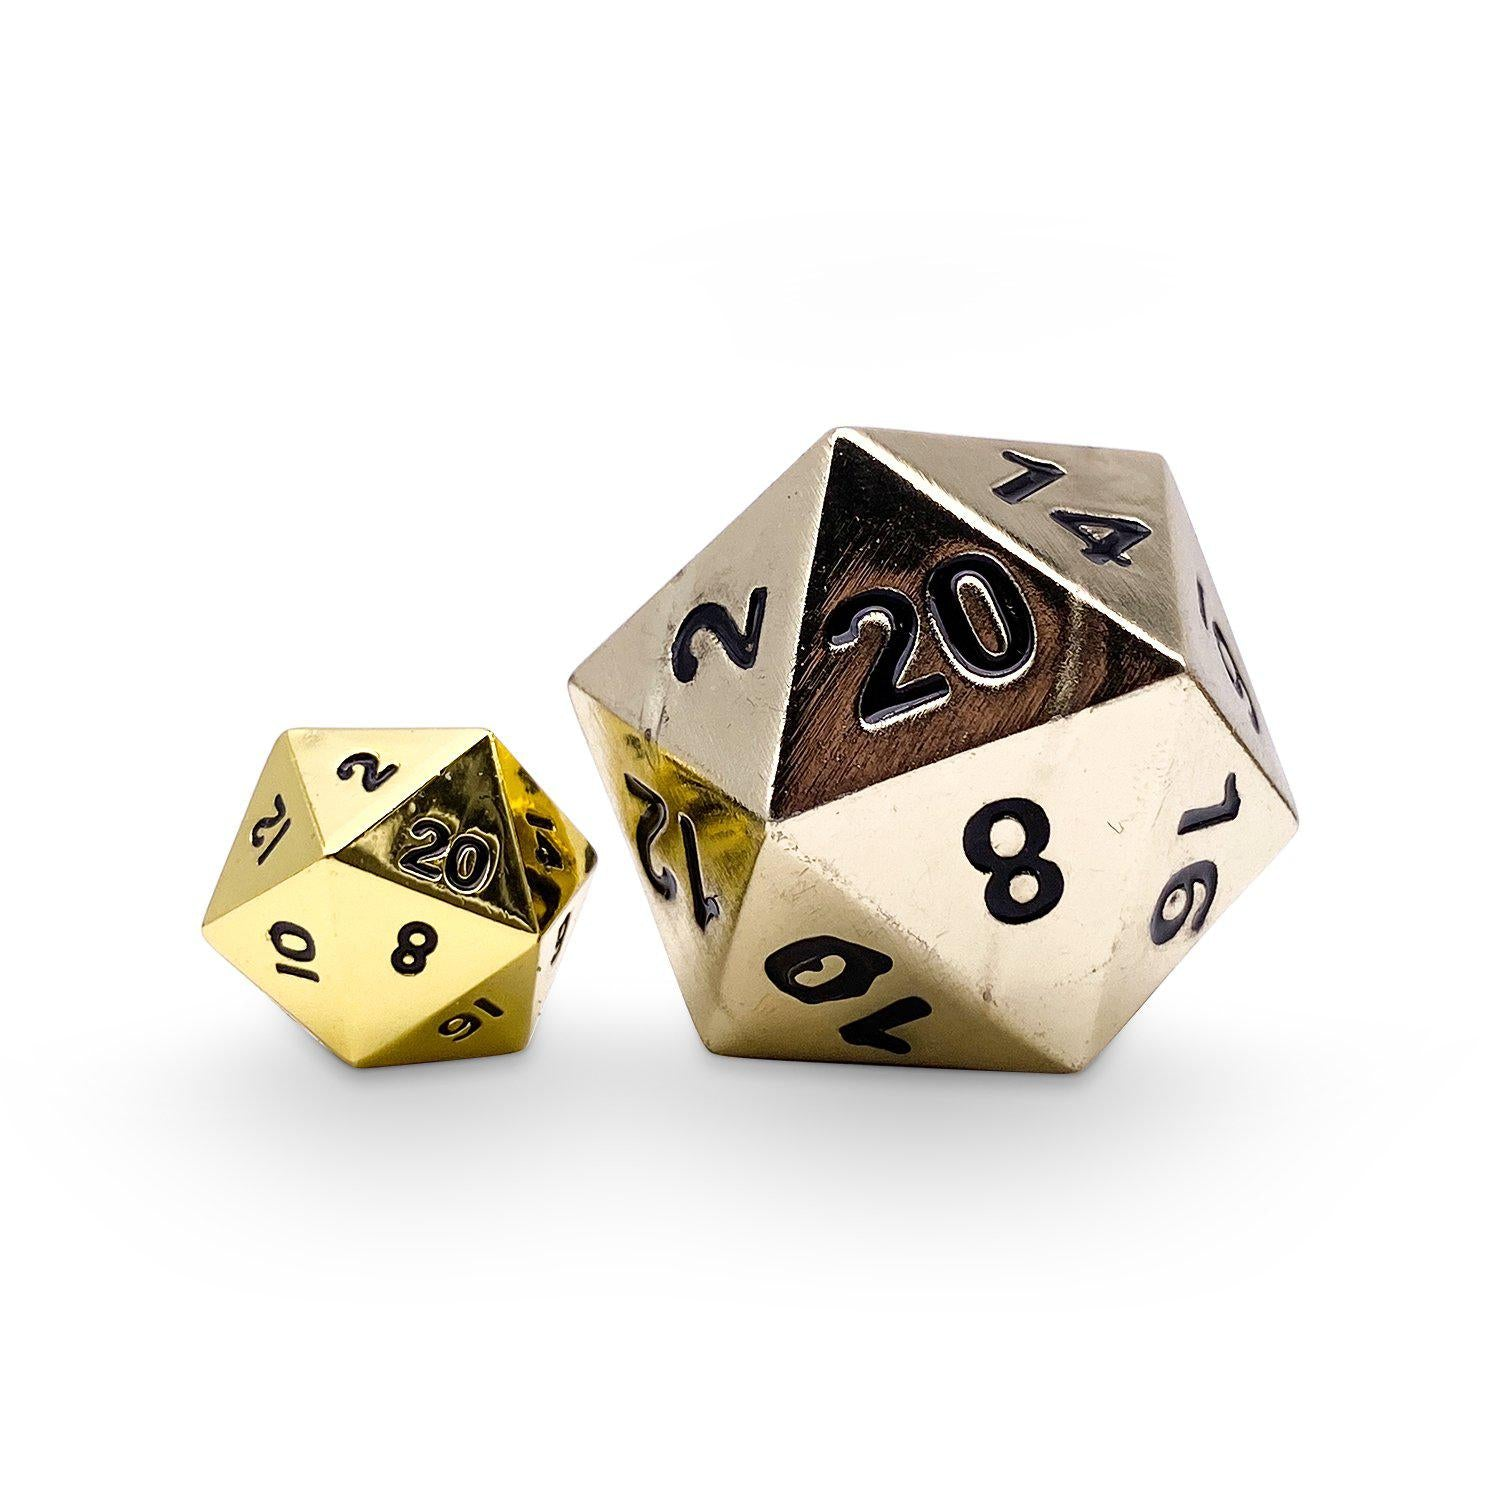 Dead Man S Gold Boulder 45mm D20 Metal Dice Norse Foundry It looks like the magic's take on fenrir, a monstrous wolf in norse mythology. norse foundry